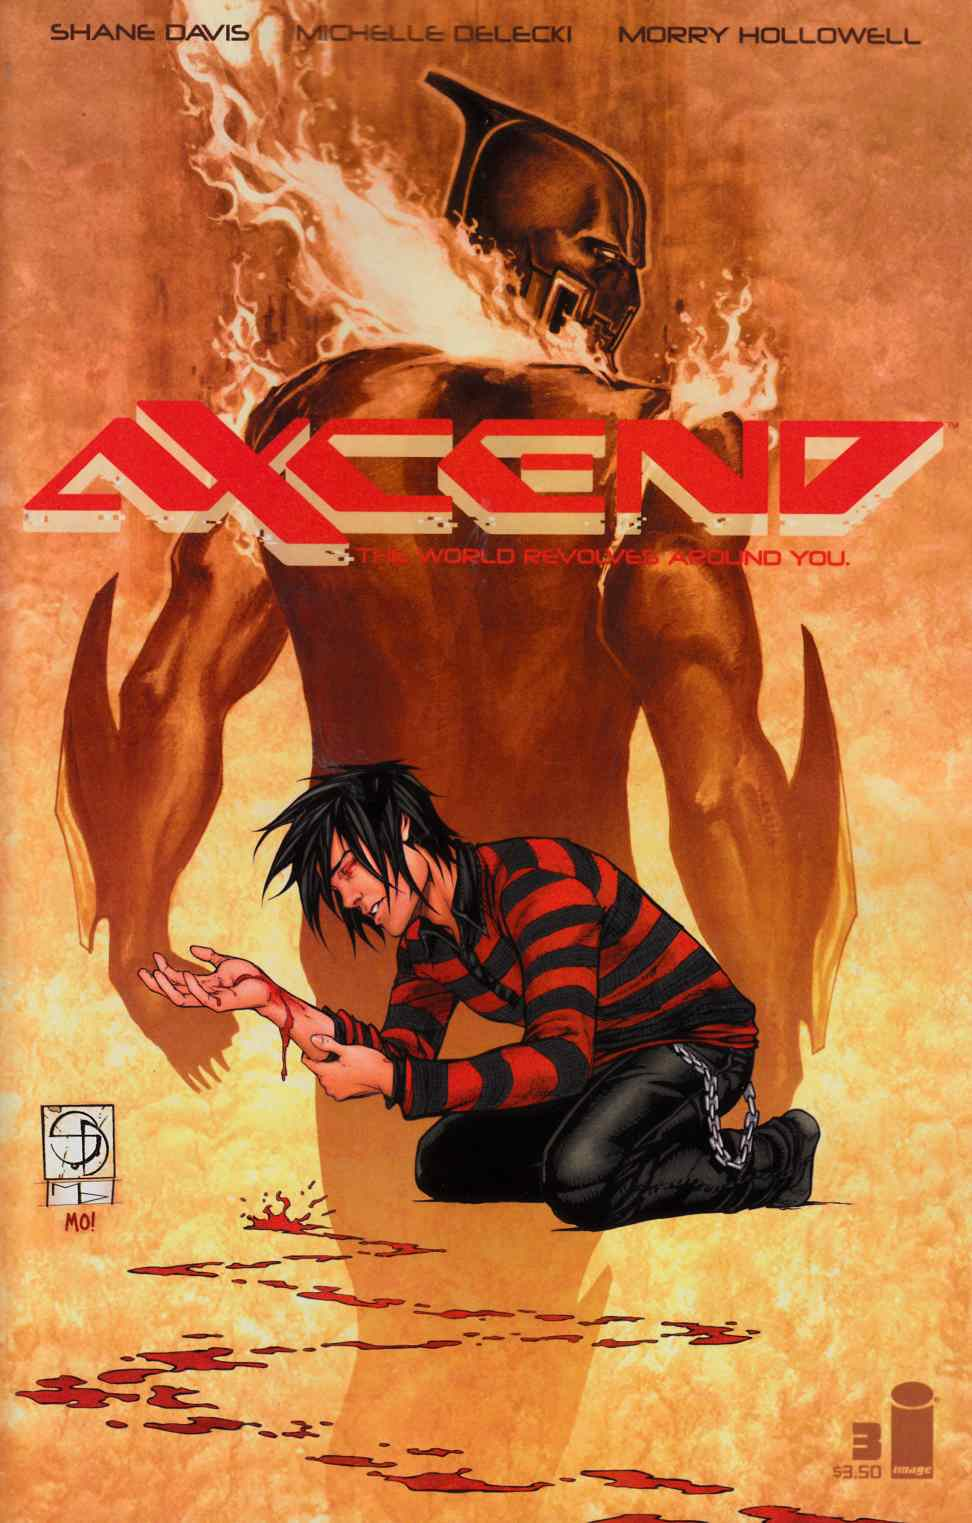 Axcend #3 Cover A- Davis Delecki & Hollowell [Image Comic]